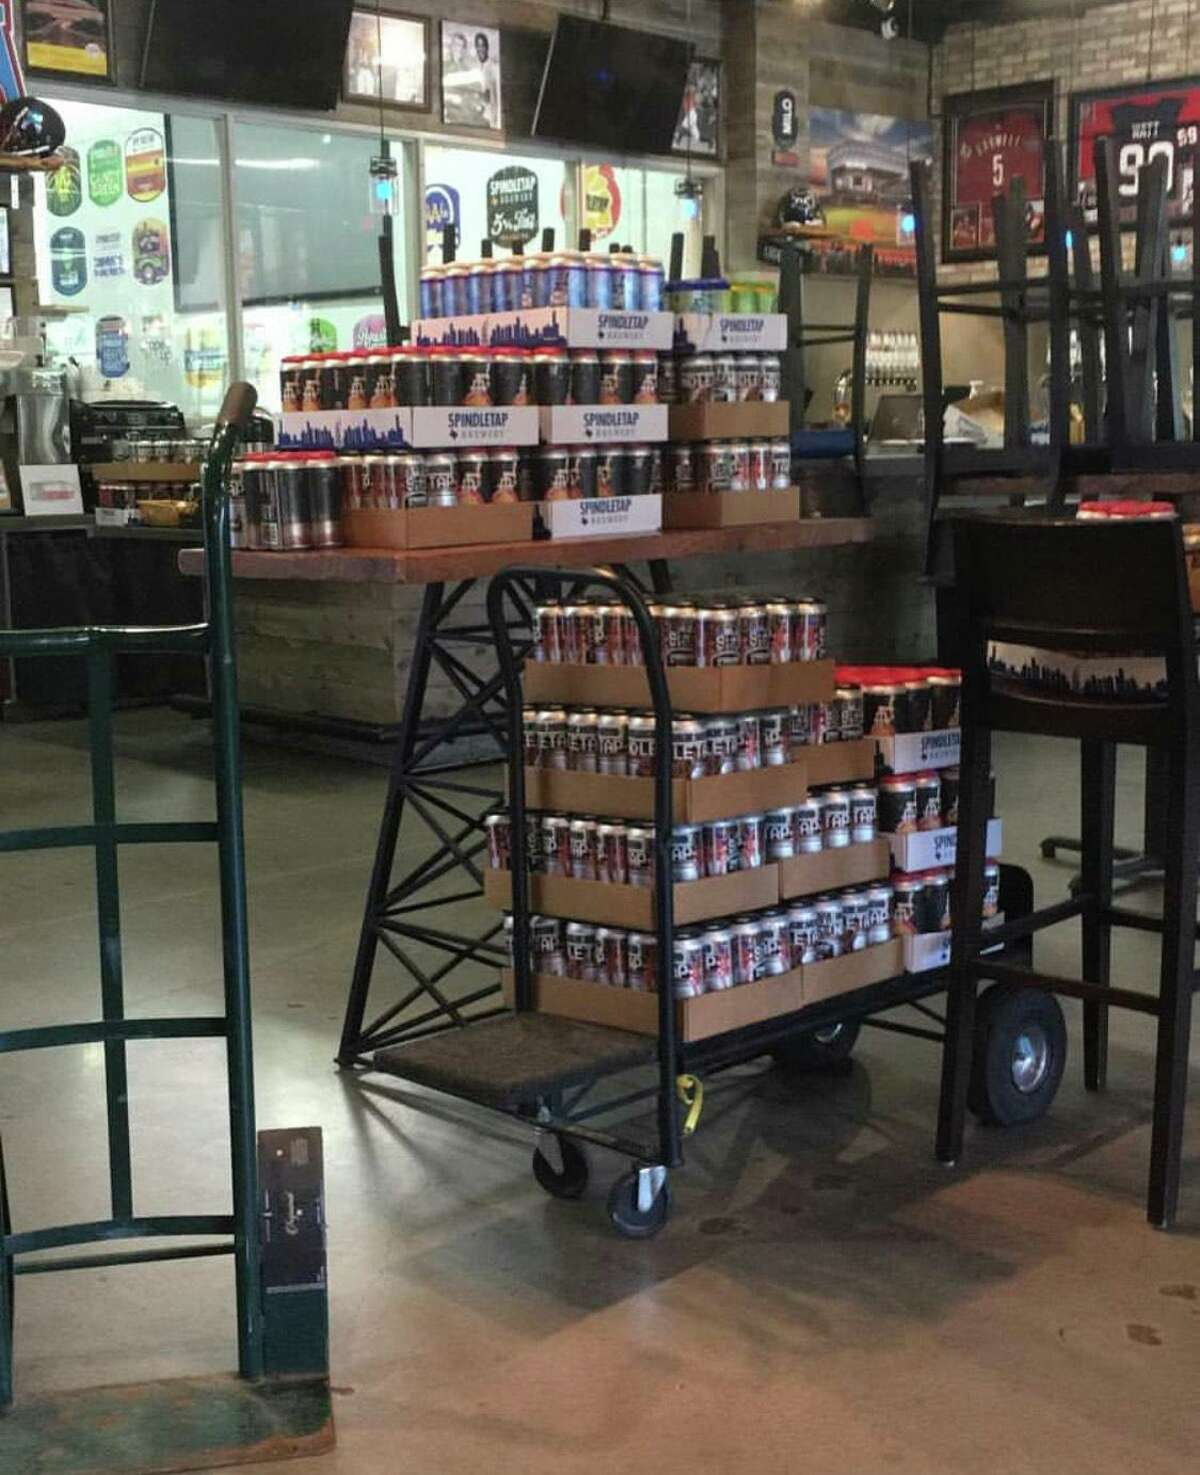 HopDrop, Houston's craft beer delivery service, picked up more than 20 cases of beer from Spindletap Brewery last weekend.